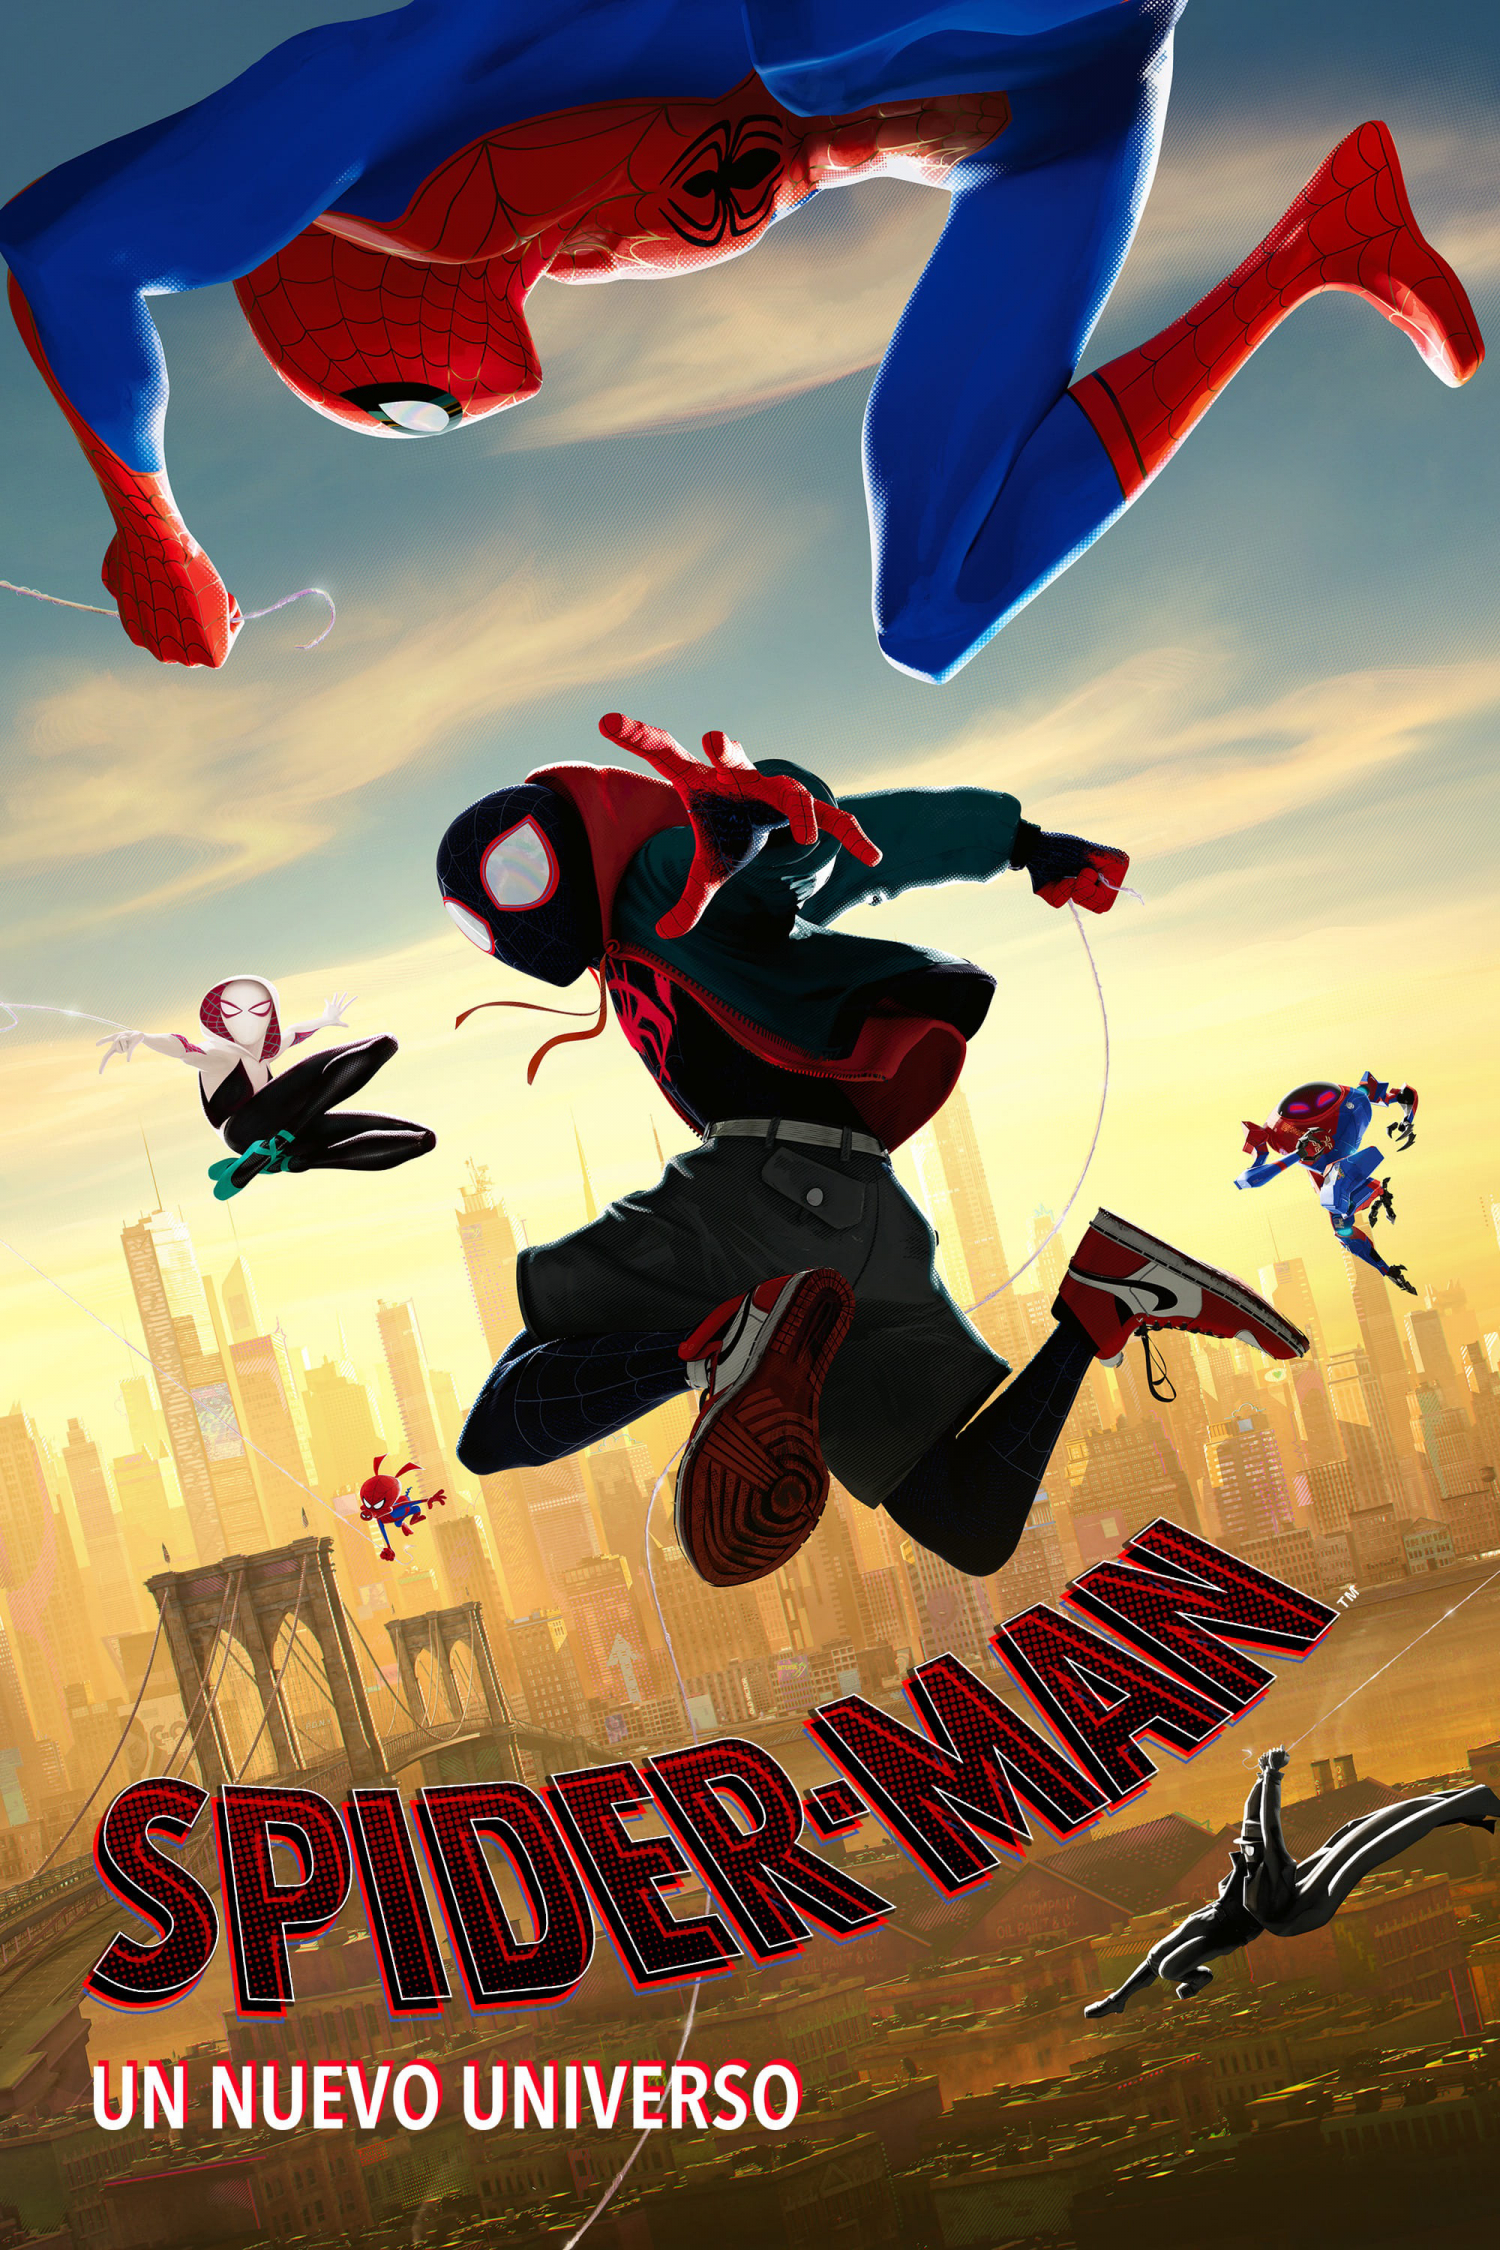 SpiderMan: Into the SpiderVerse  Movie info and showtimes in Trinidad and Tobago  ID 2249